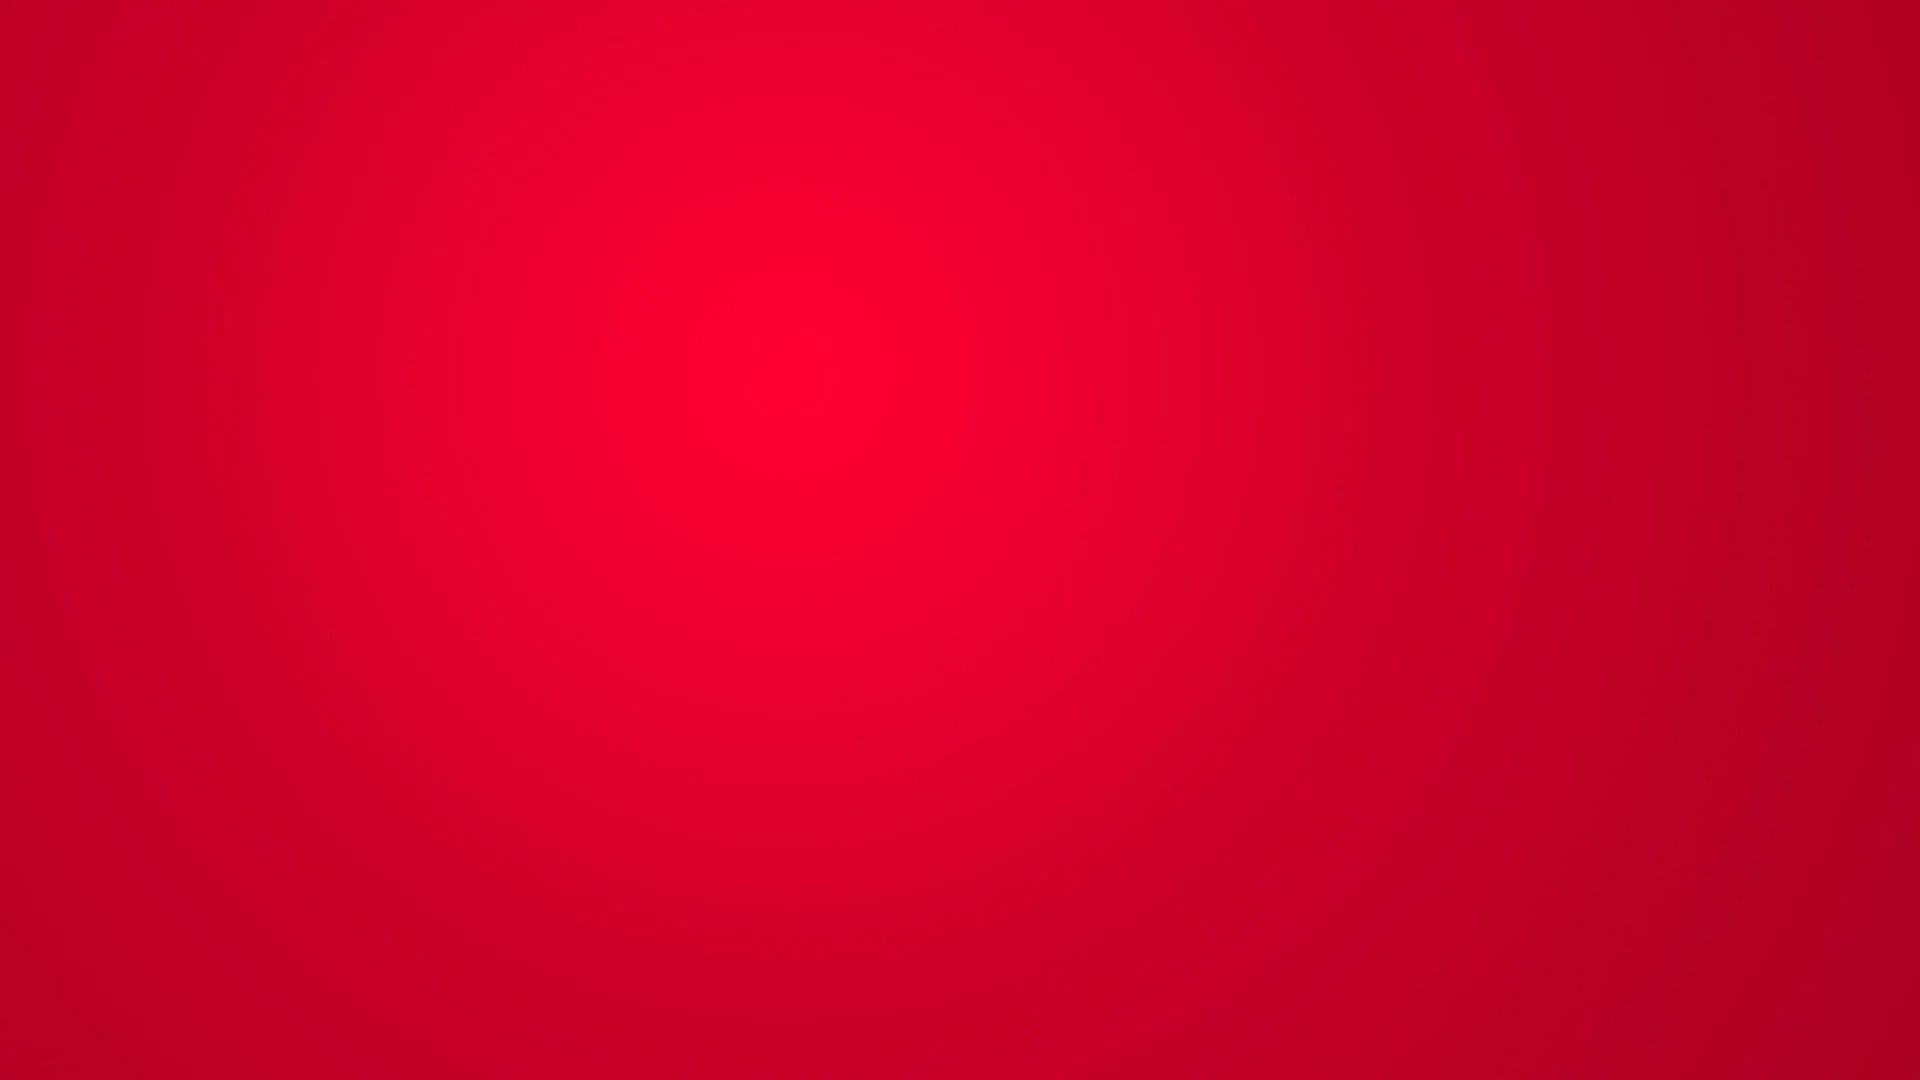 red-Presentation-Gradient-Background